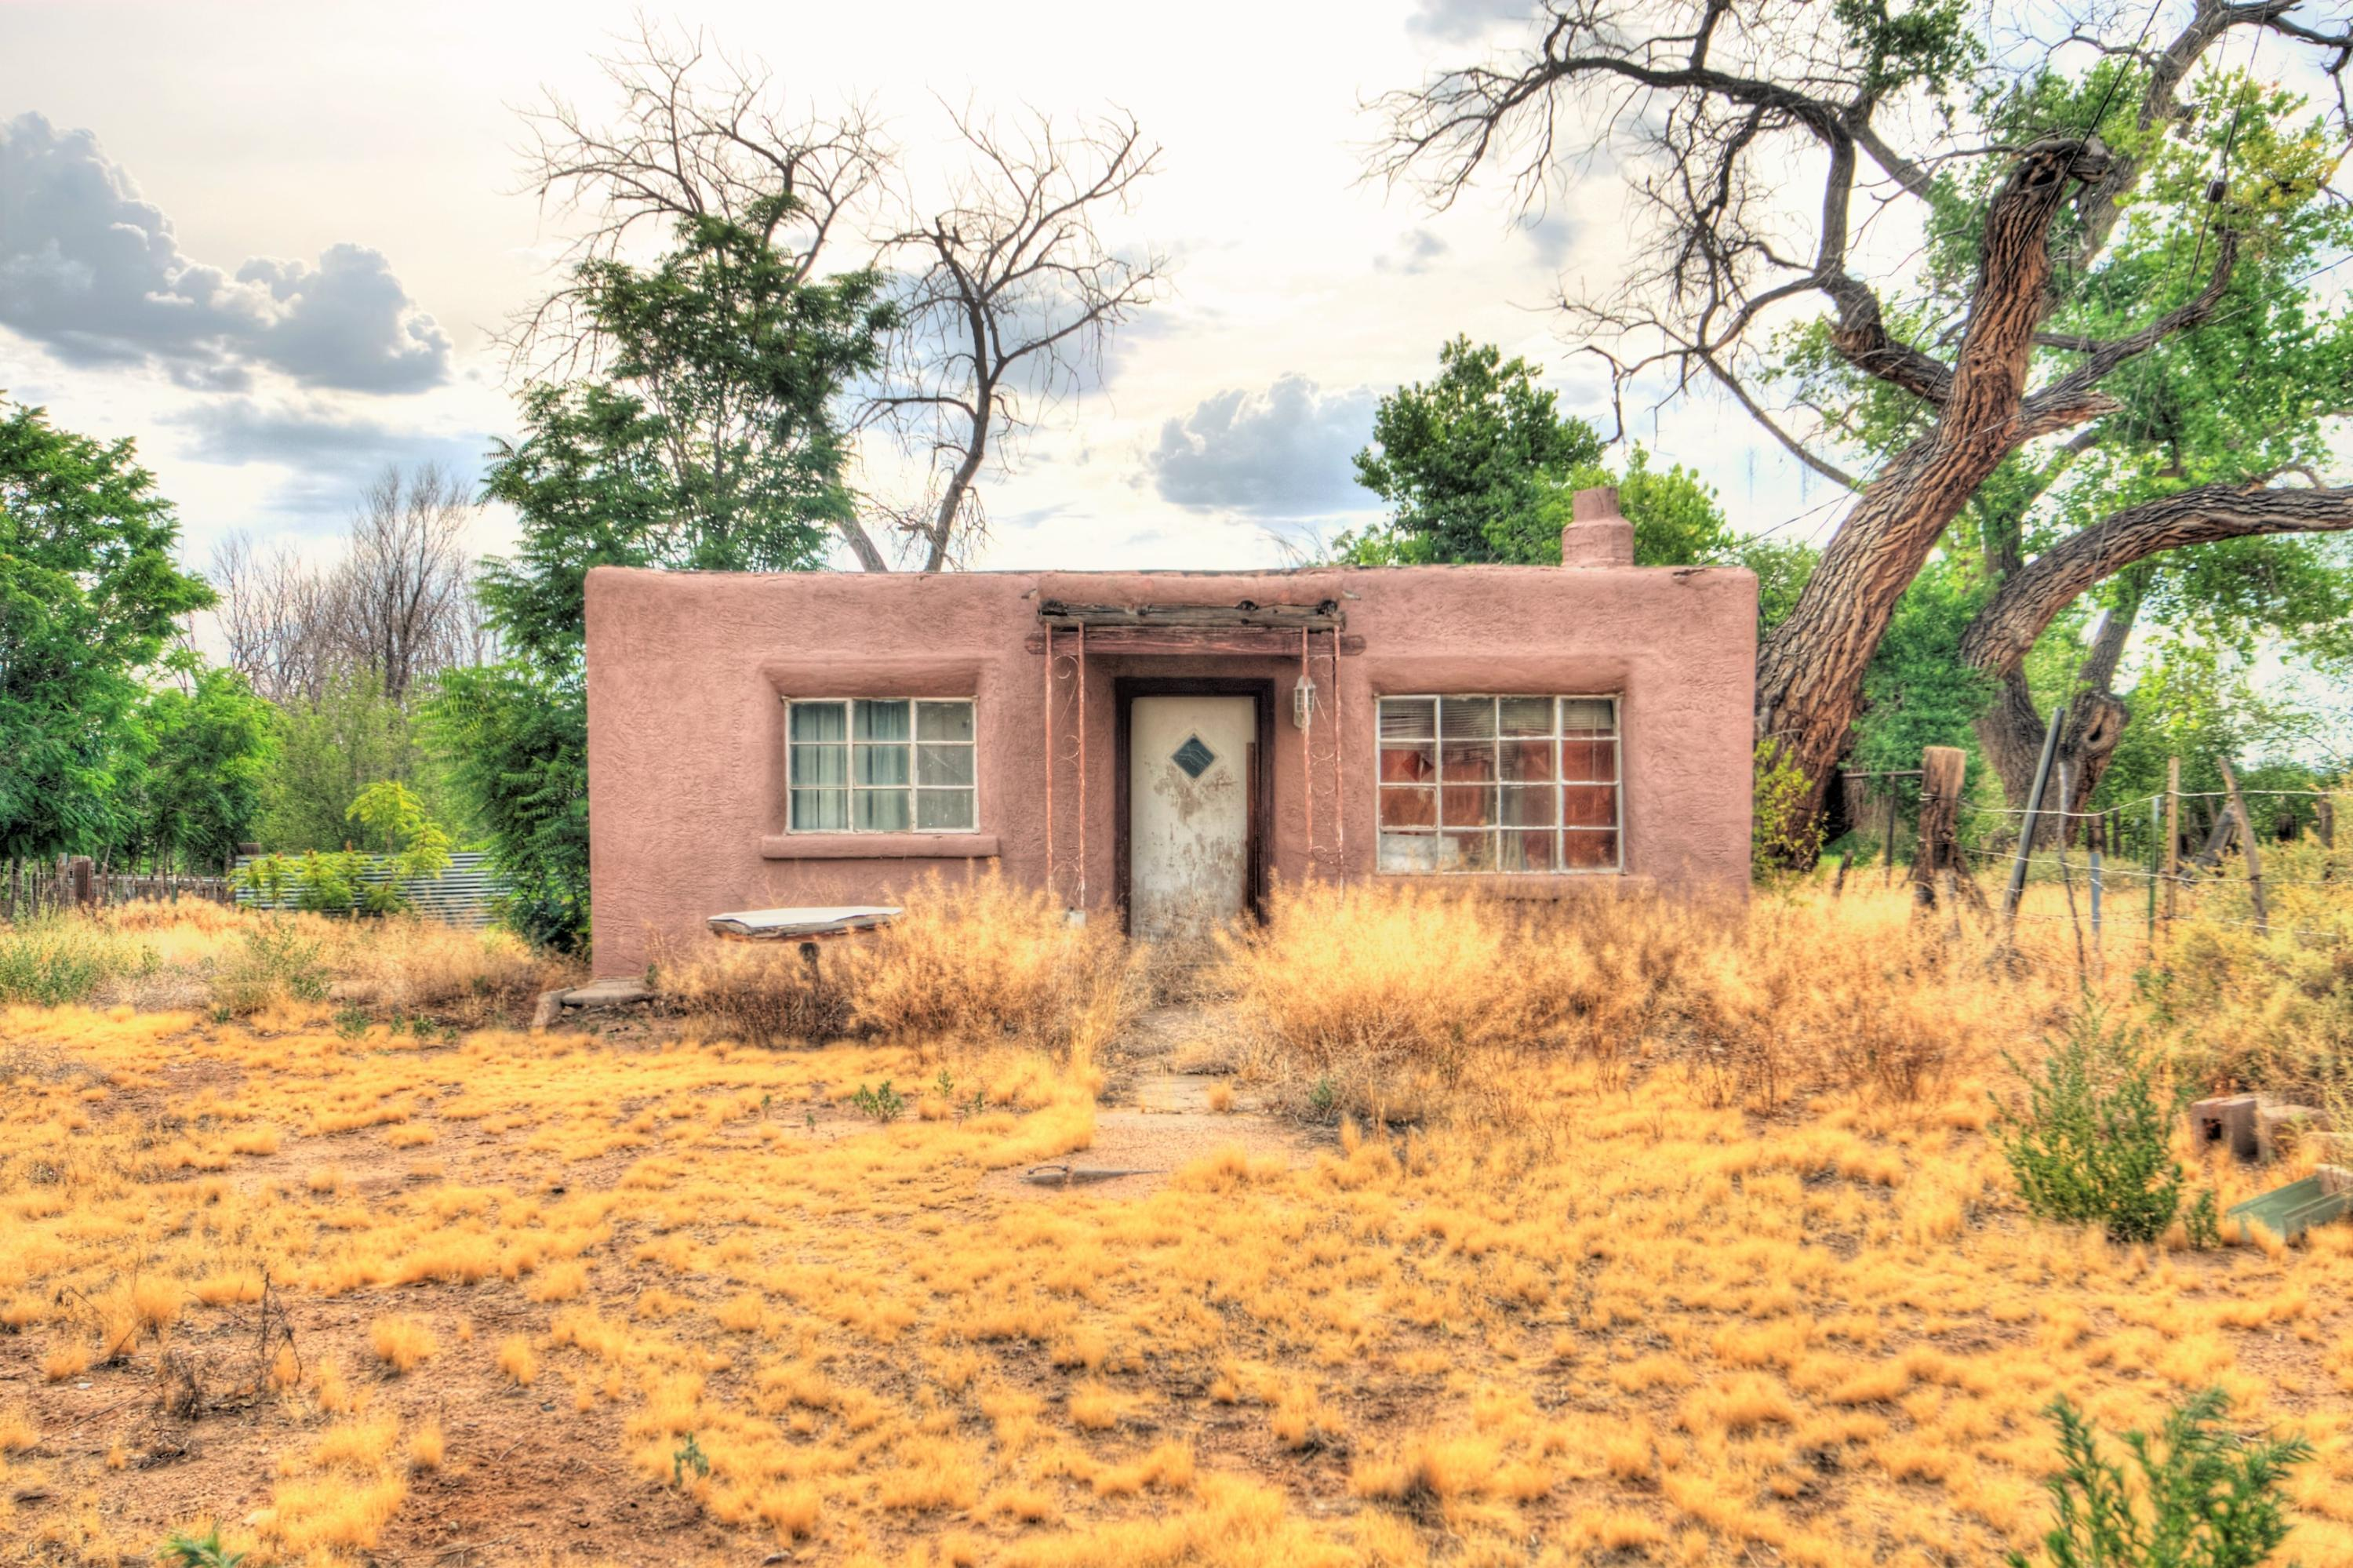 This Charming North Valley Adobe Home tucked away in a Great Location. Huge potential with a Awesome 0.63 Acre Lot! Sold As-Is!!!